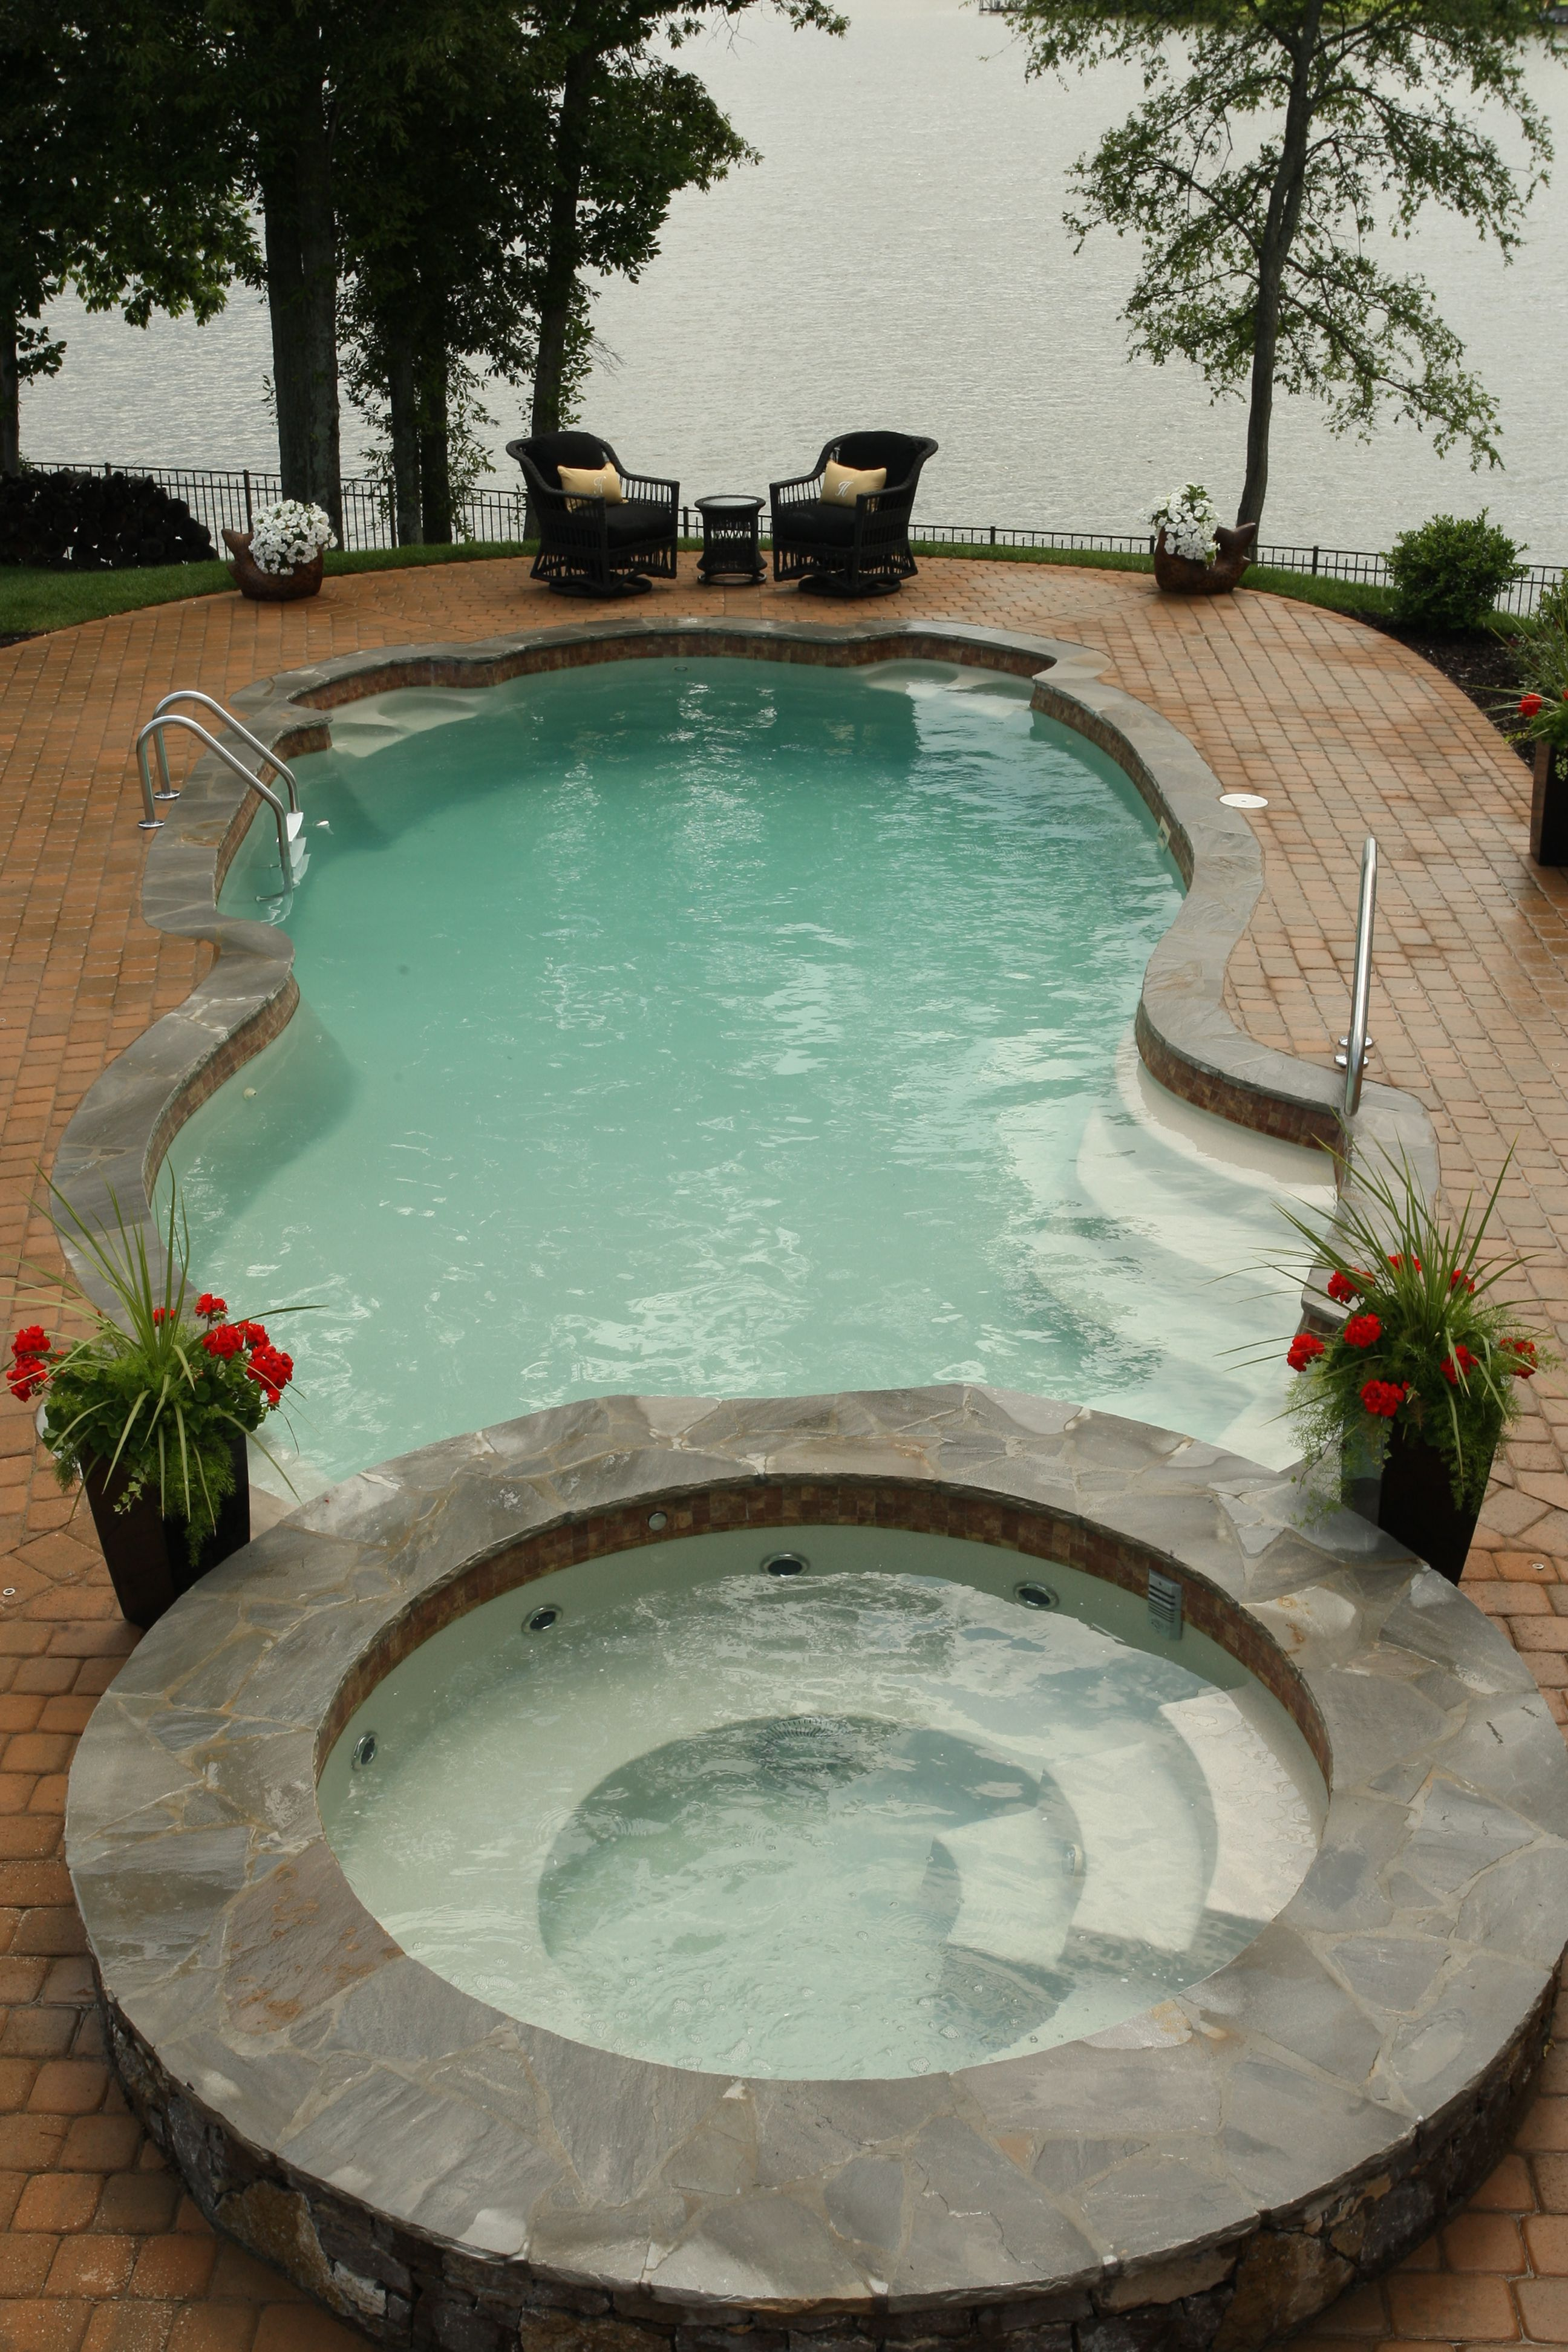 Make Your Backyard More Awesome With 30 Gorgeous Swimming Pool Design Ideas Swimming Pools Backyard Small Inground Pool Hot Tub Outdoor